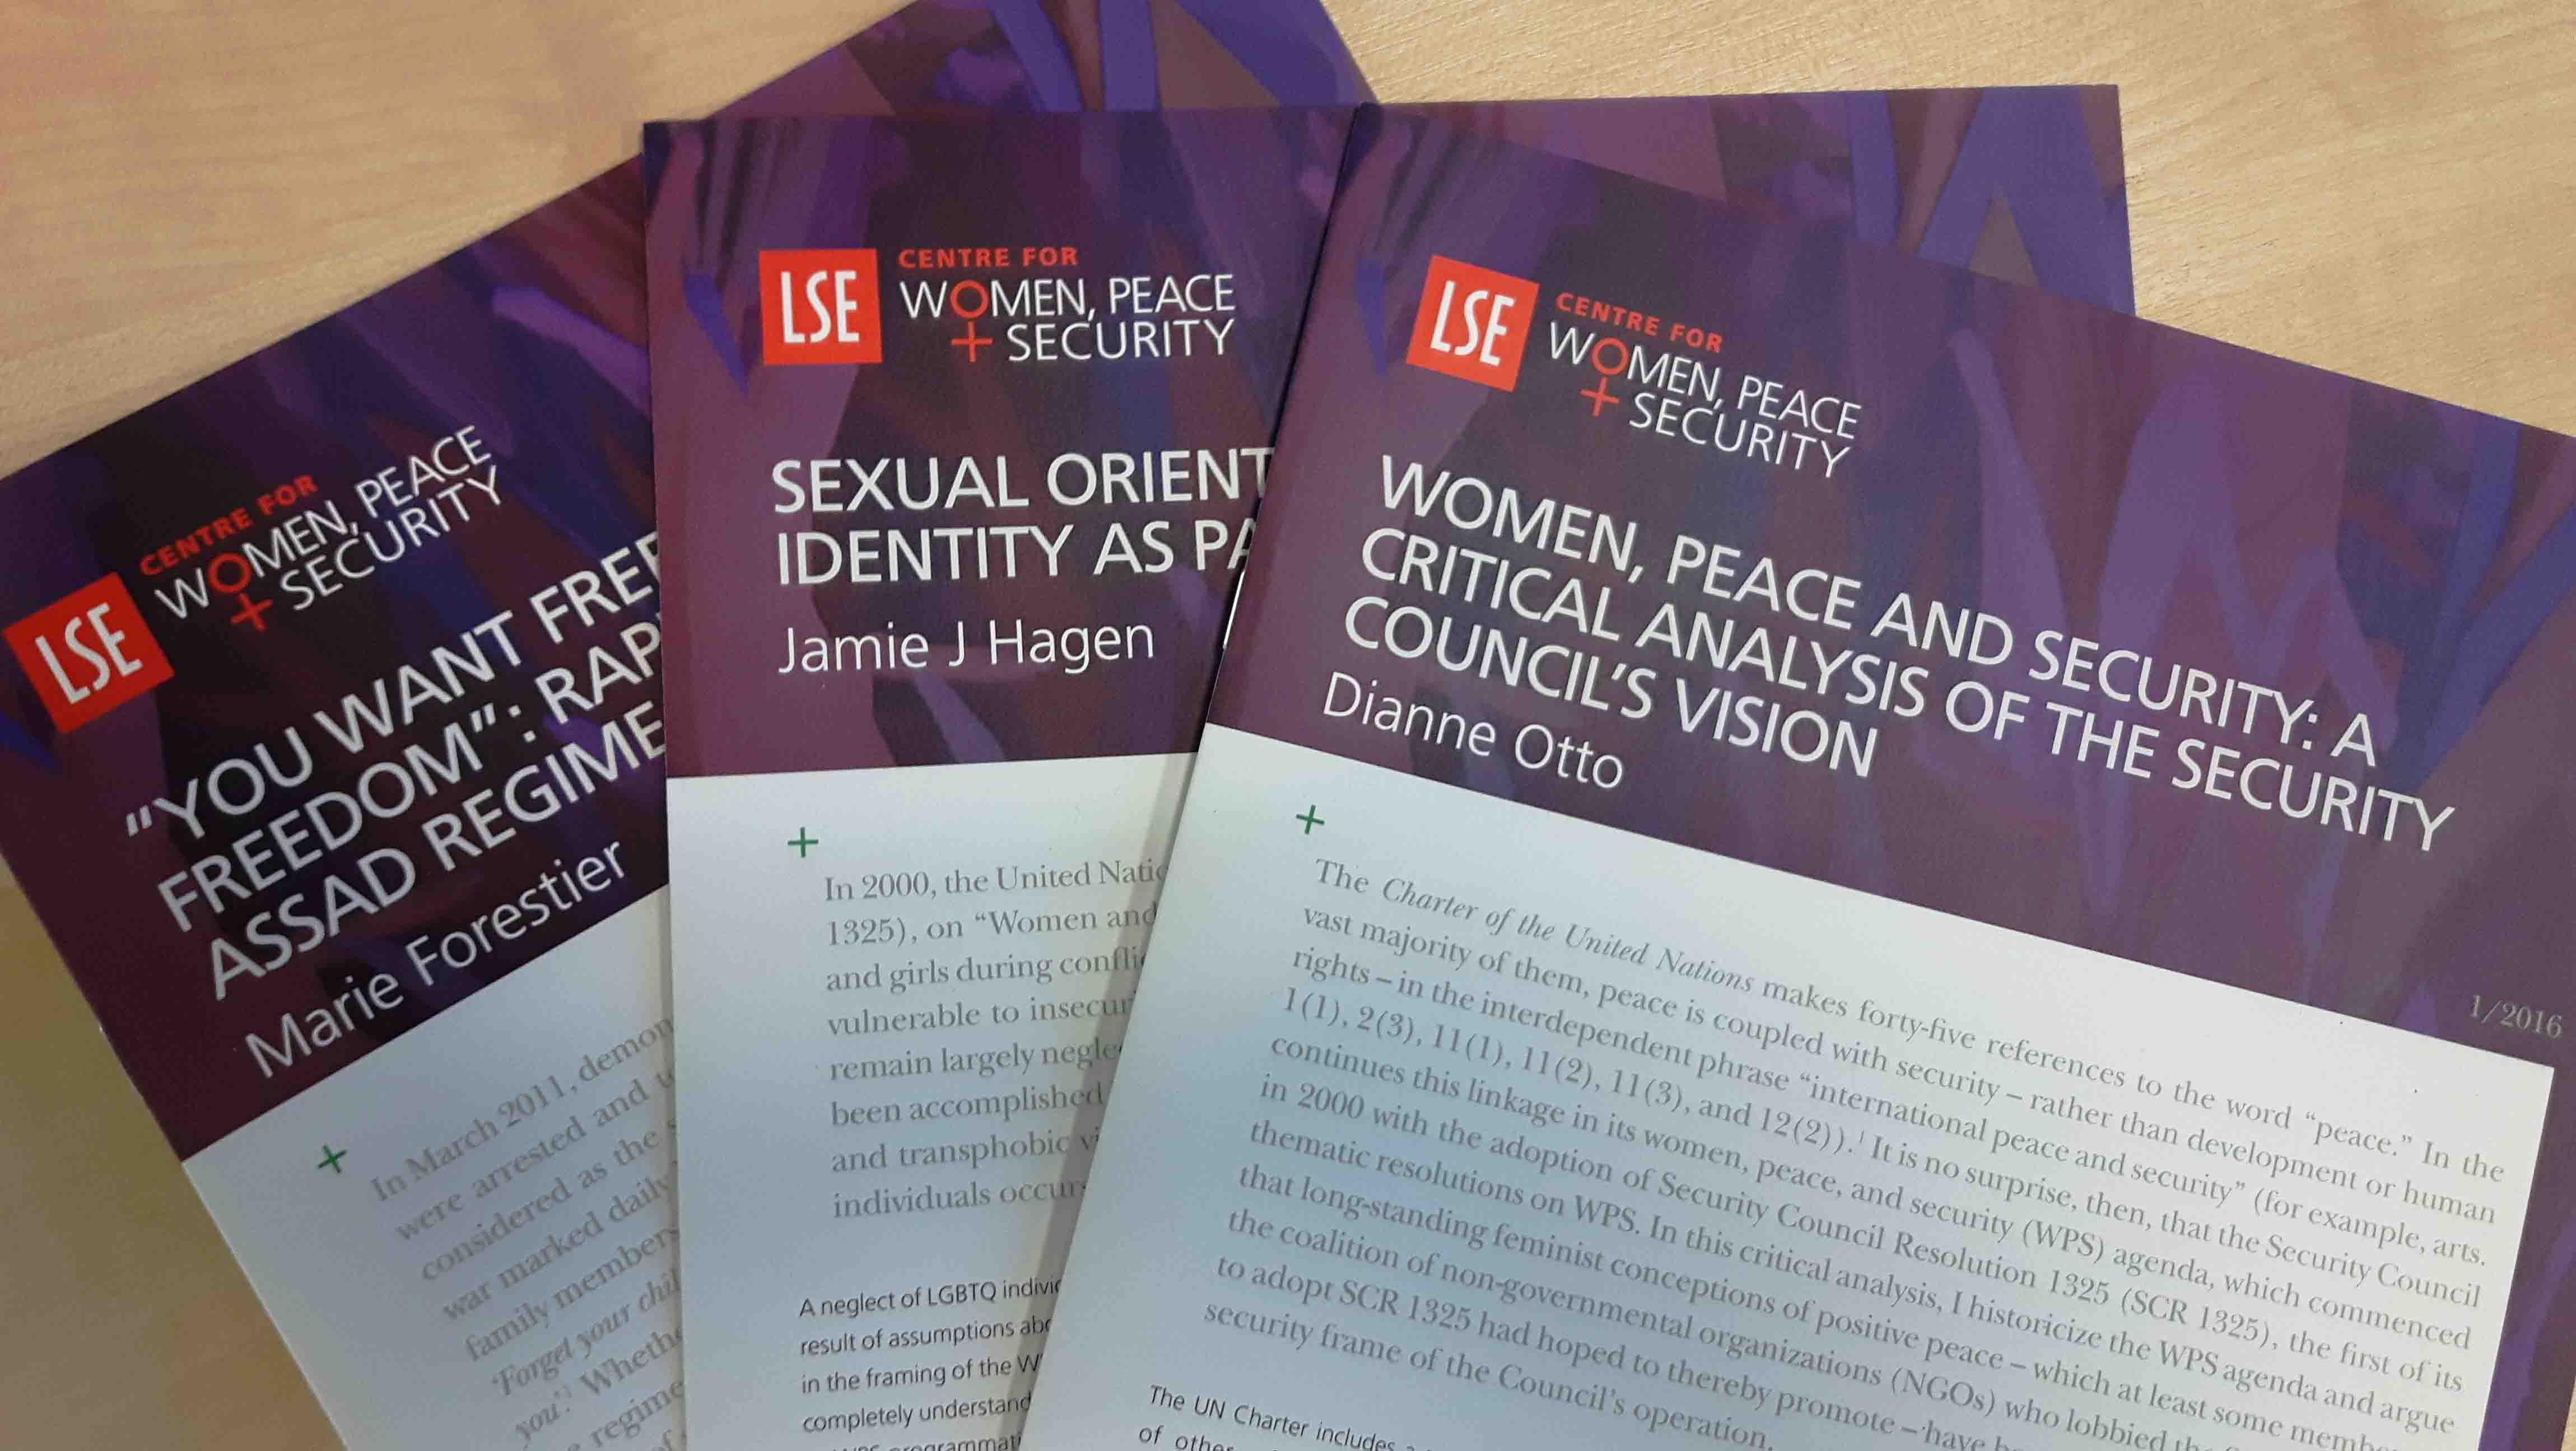 Women, peace and security working papers